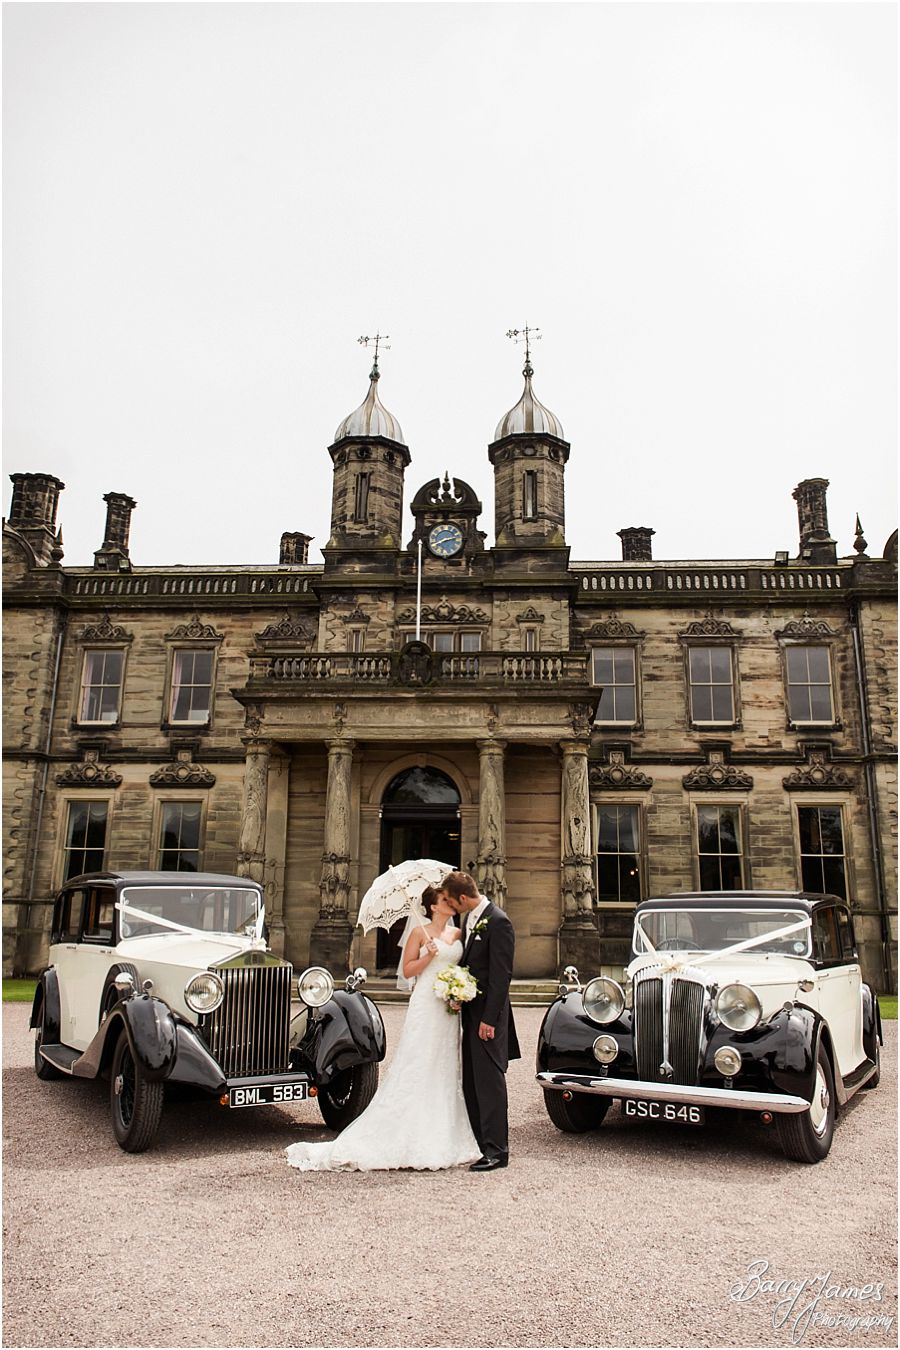 Beautiful wedding transport from Aarons Cars at Sandon Hall in Staffordshire by Stafford Wedding Photographer Barry James